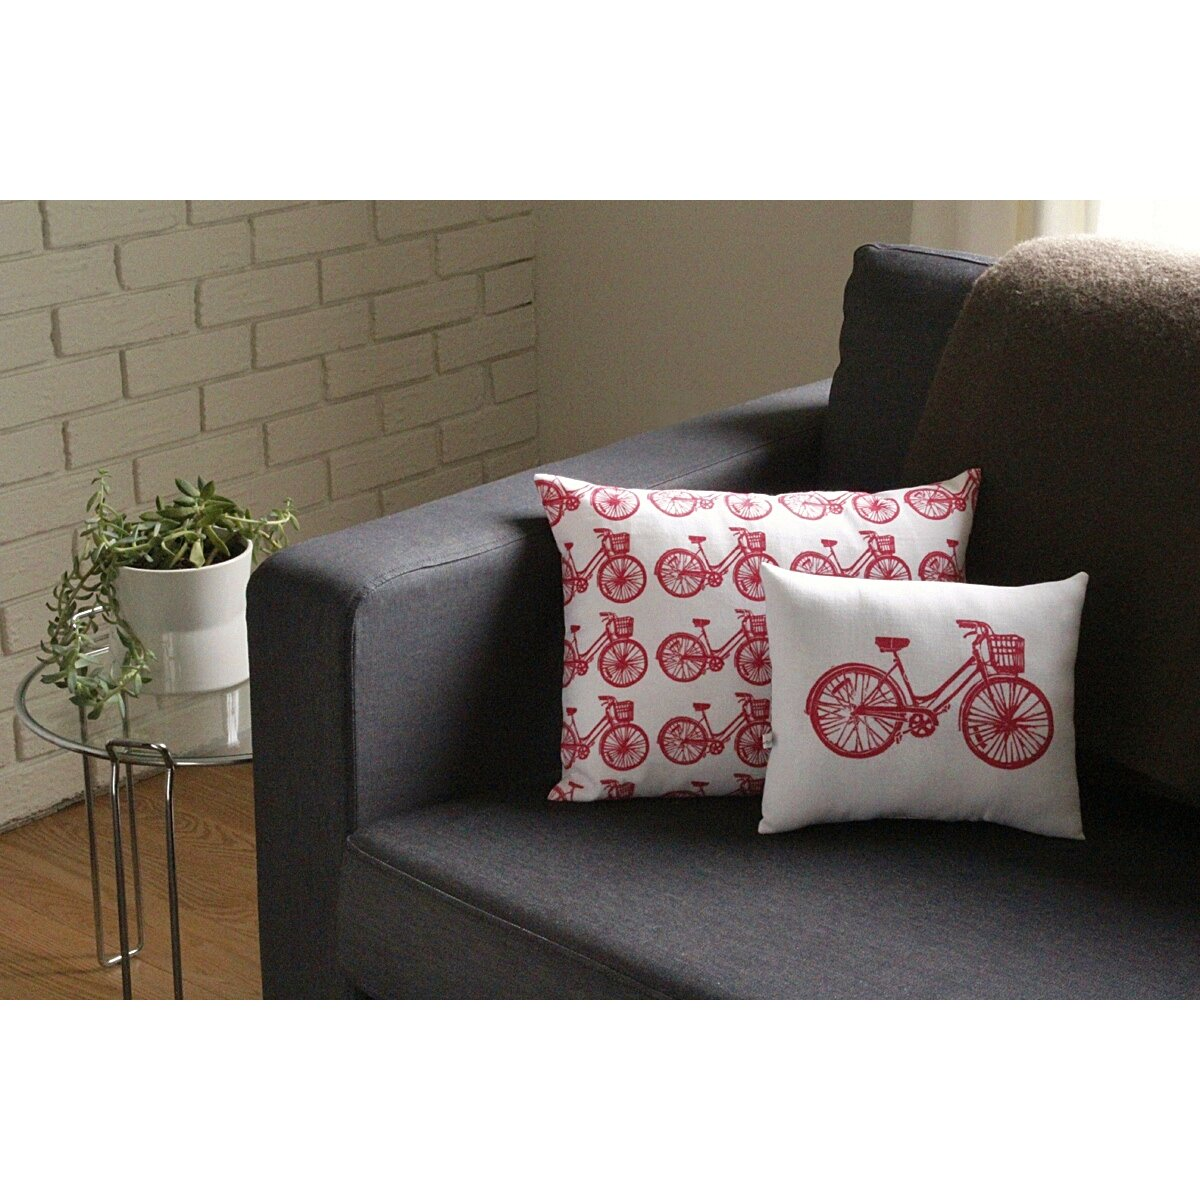 Bicycle Print Throw Pillow : Artgoodies Bike All Over Pattern Block Print Accent Cotton Throw Pillow & Reviews Wayfair